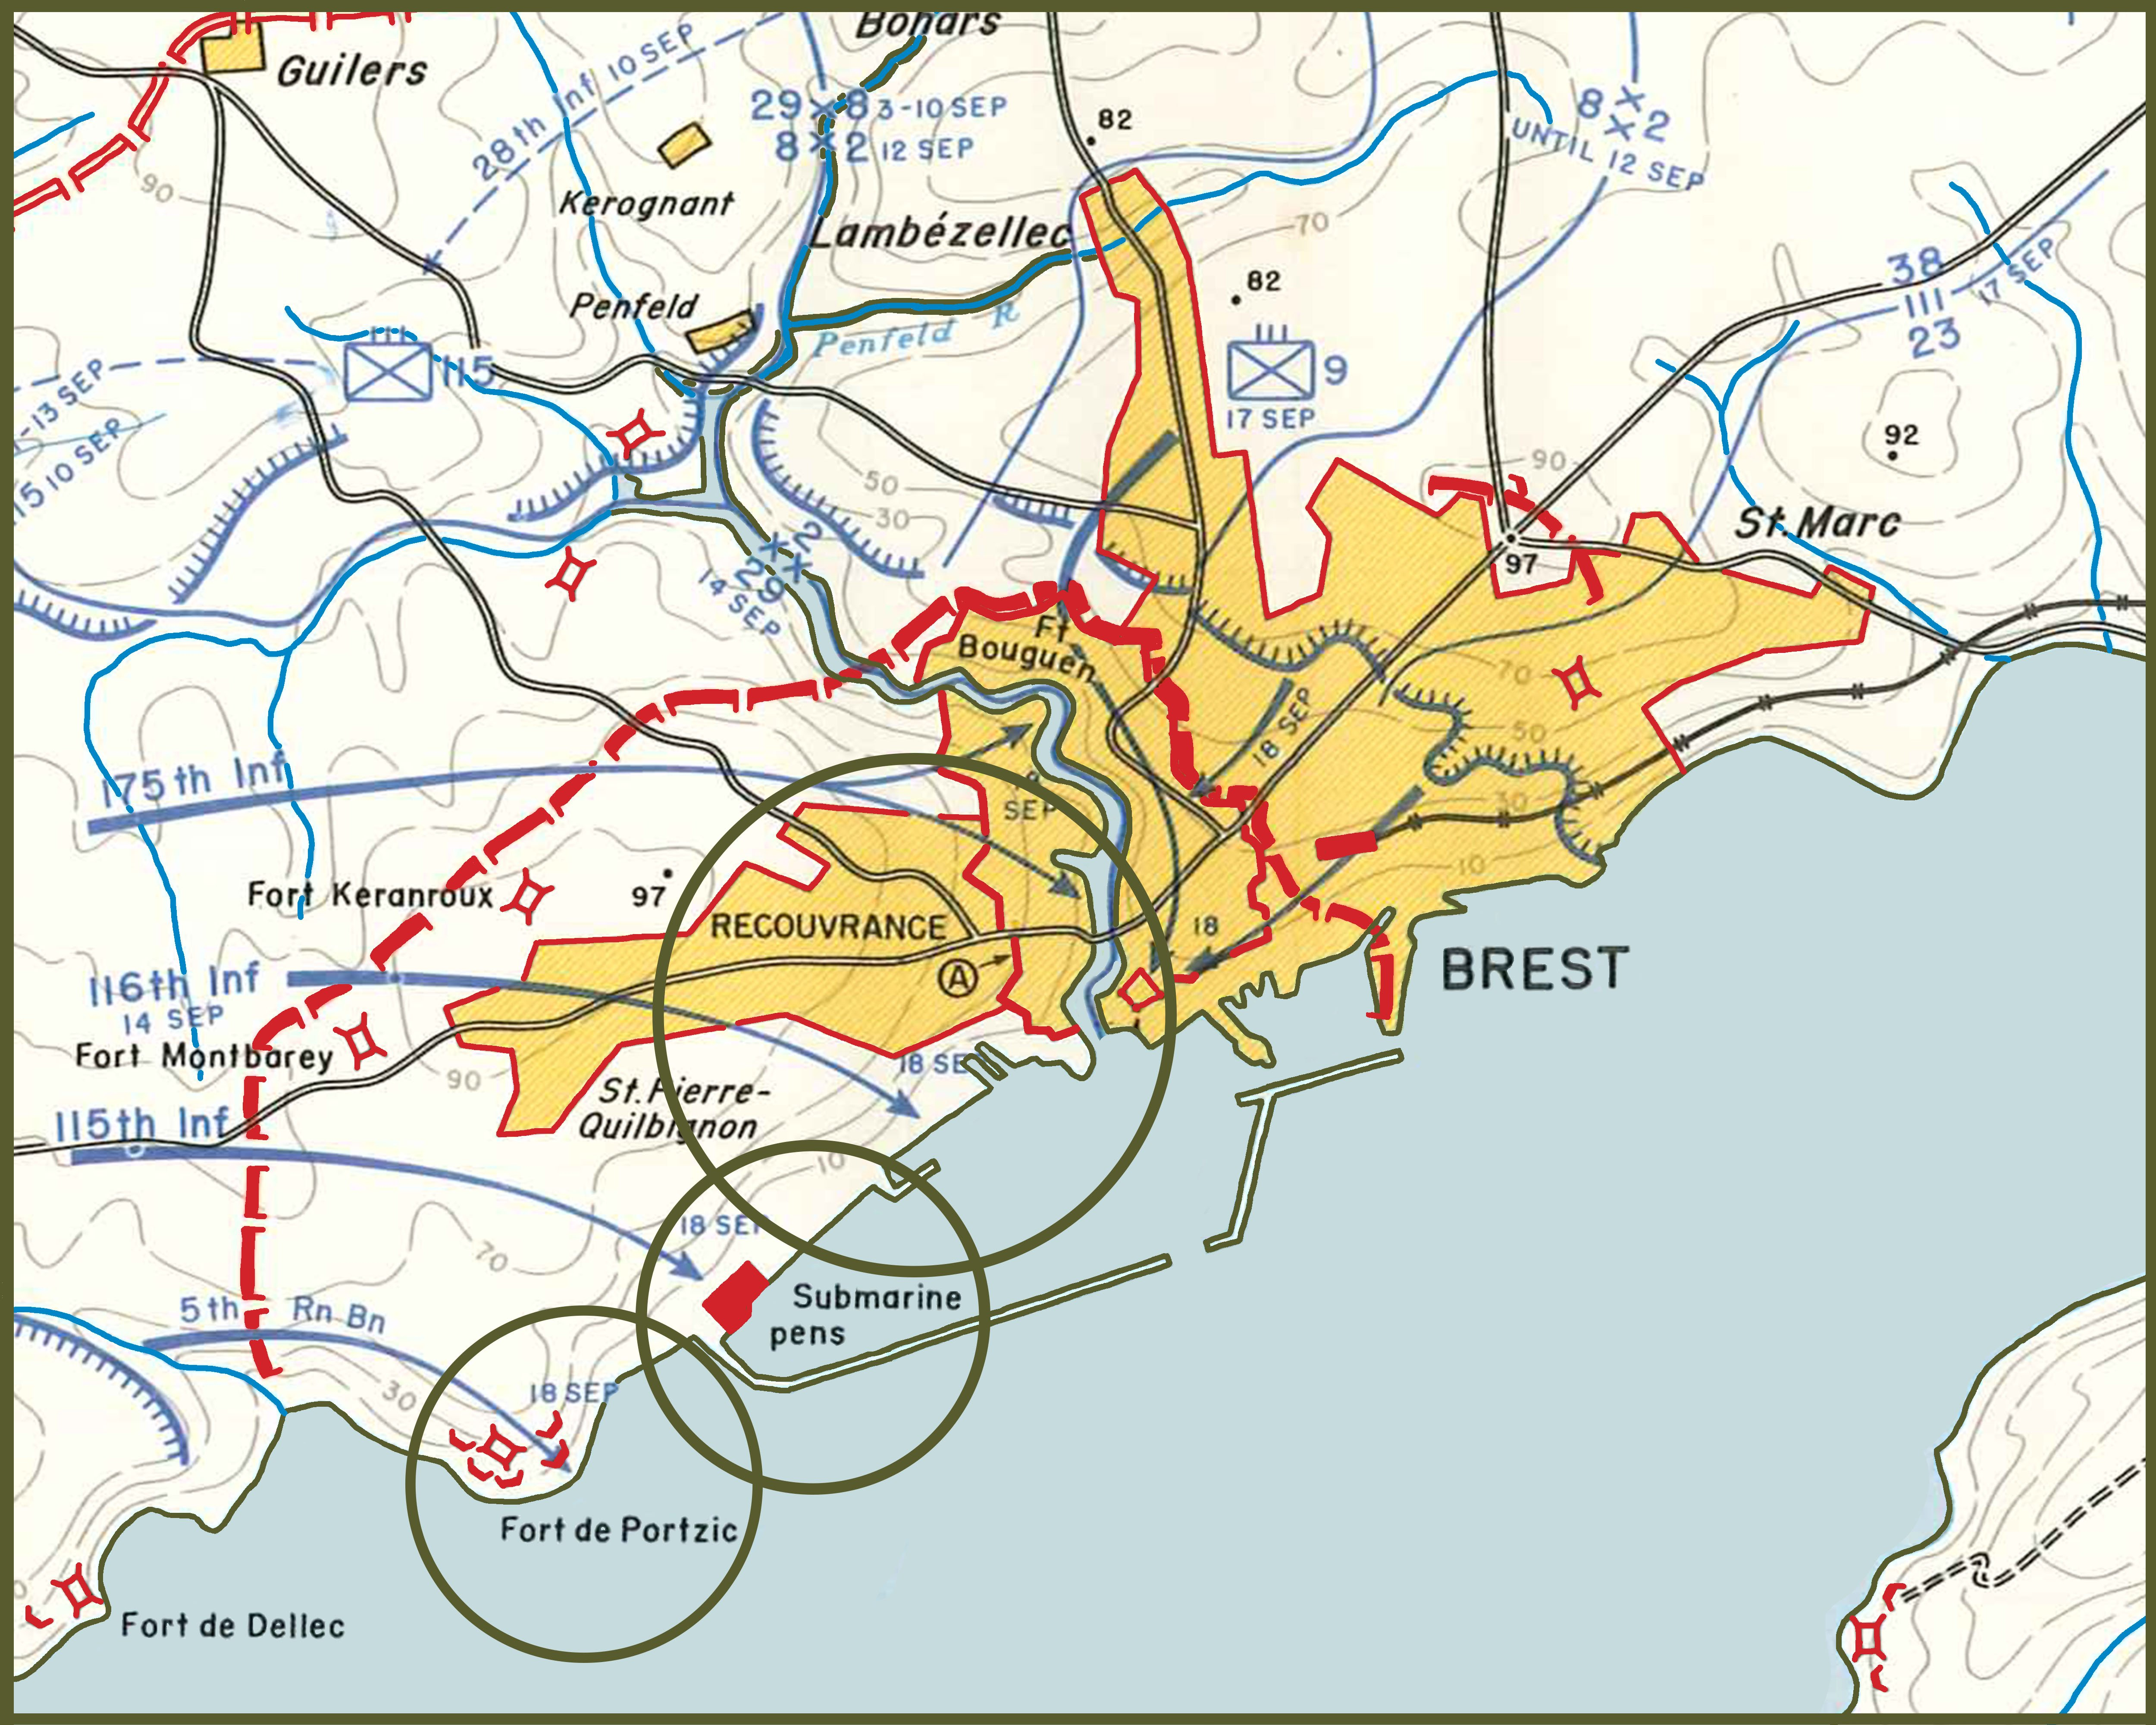 Final Brest center map 29th 8th and 2nd infantry division template